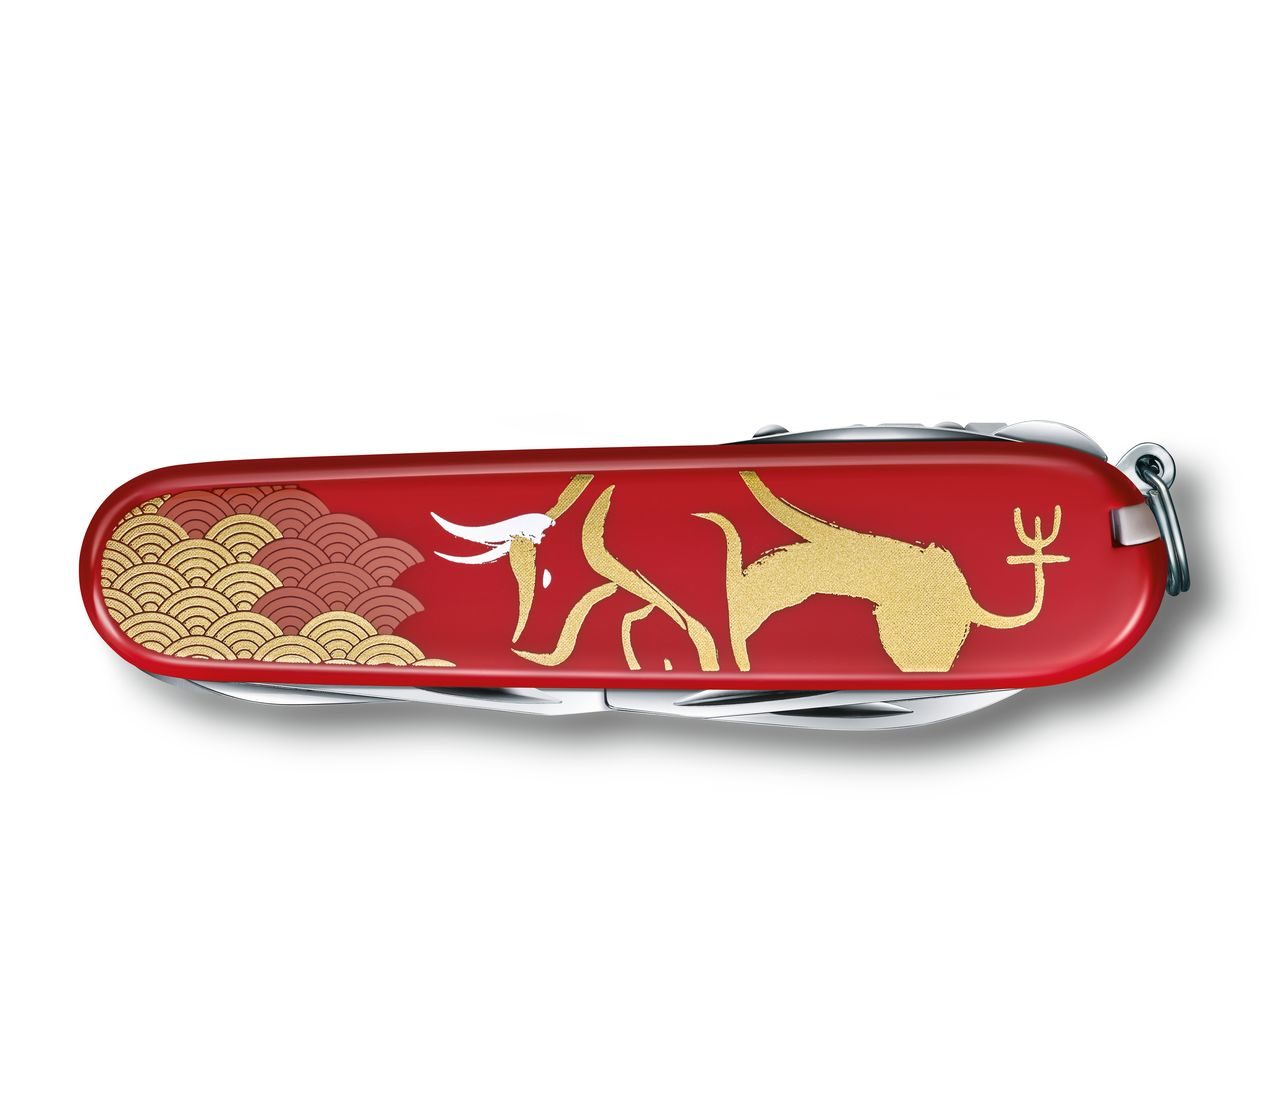 Victorinox Huntsman Year Of The Ox 2021 In Red 1 3714 E10